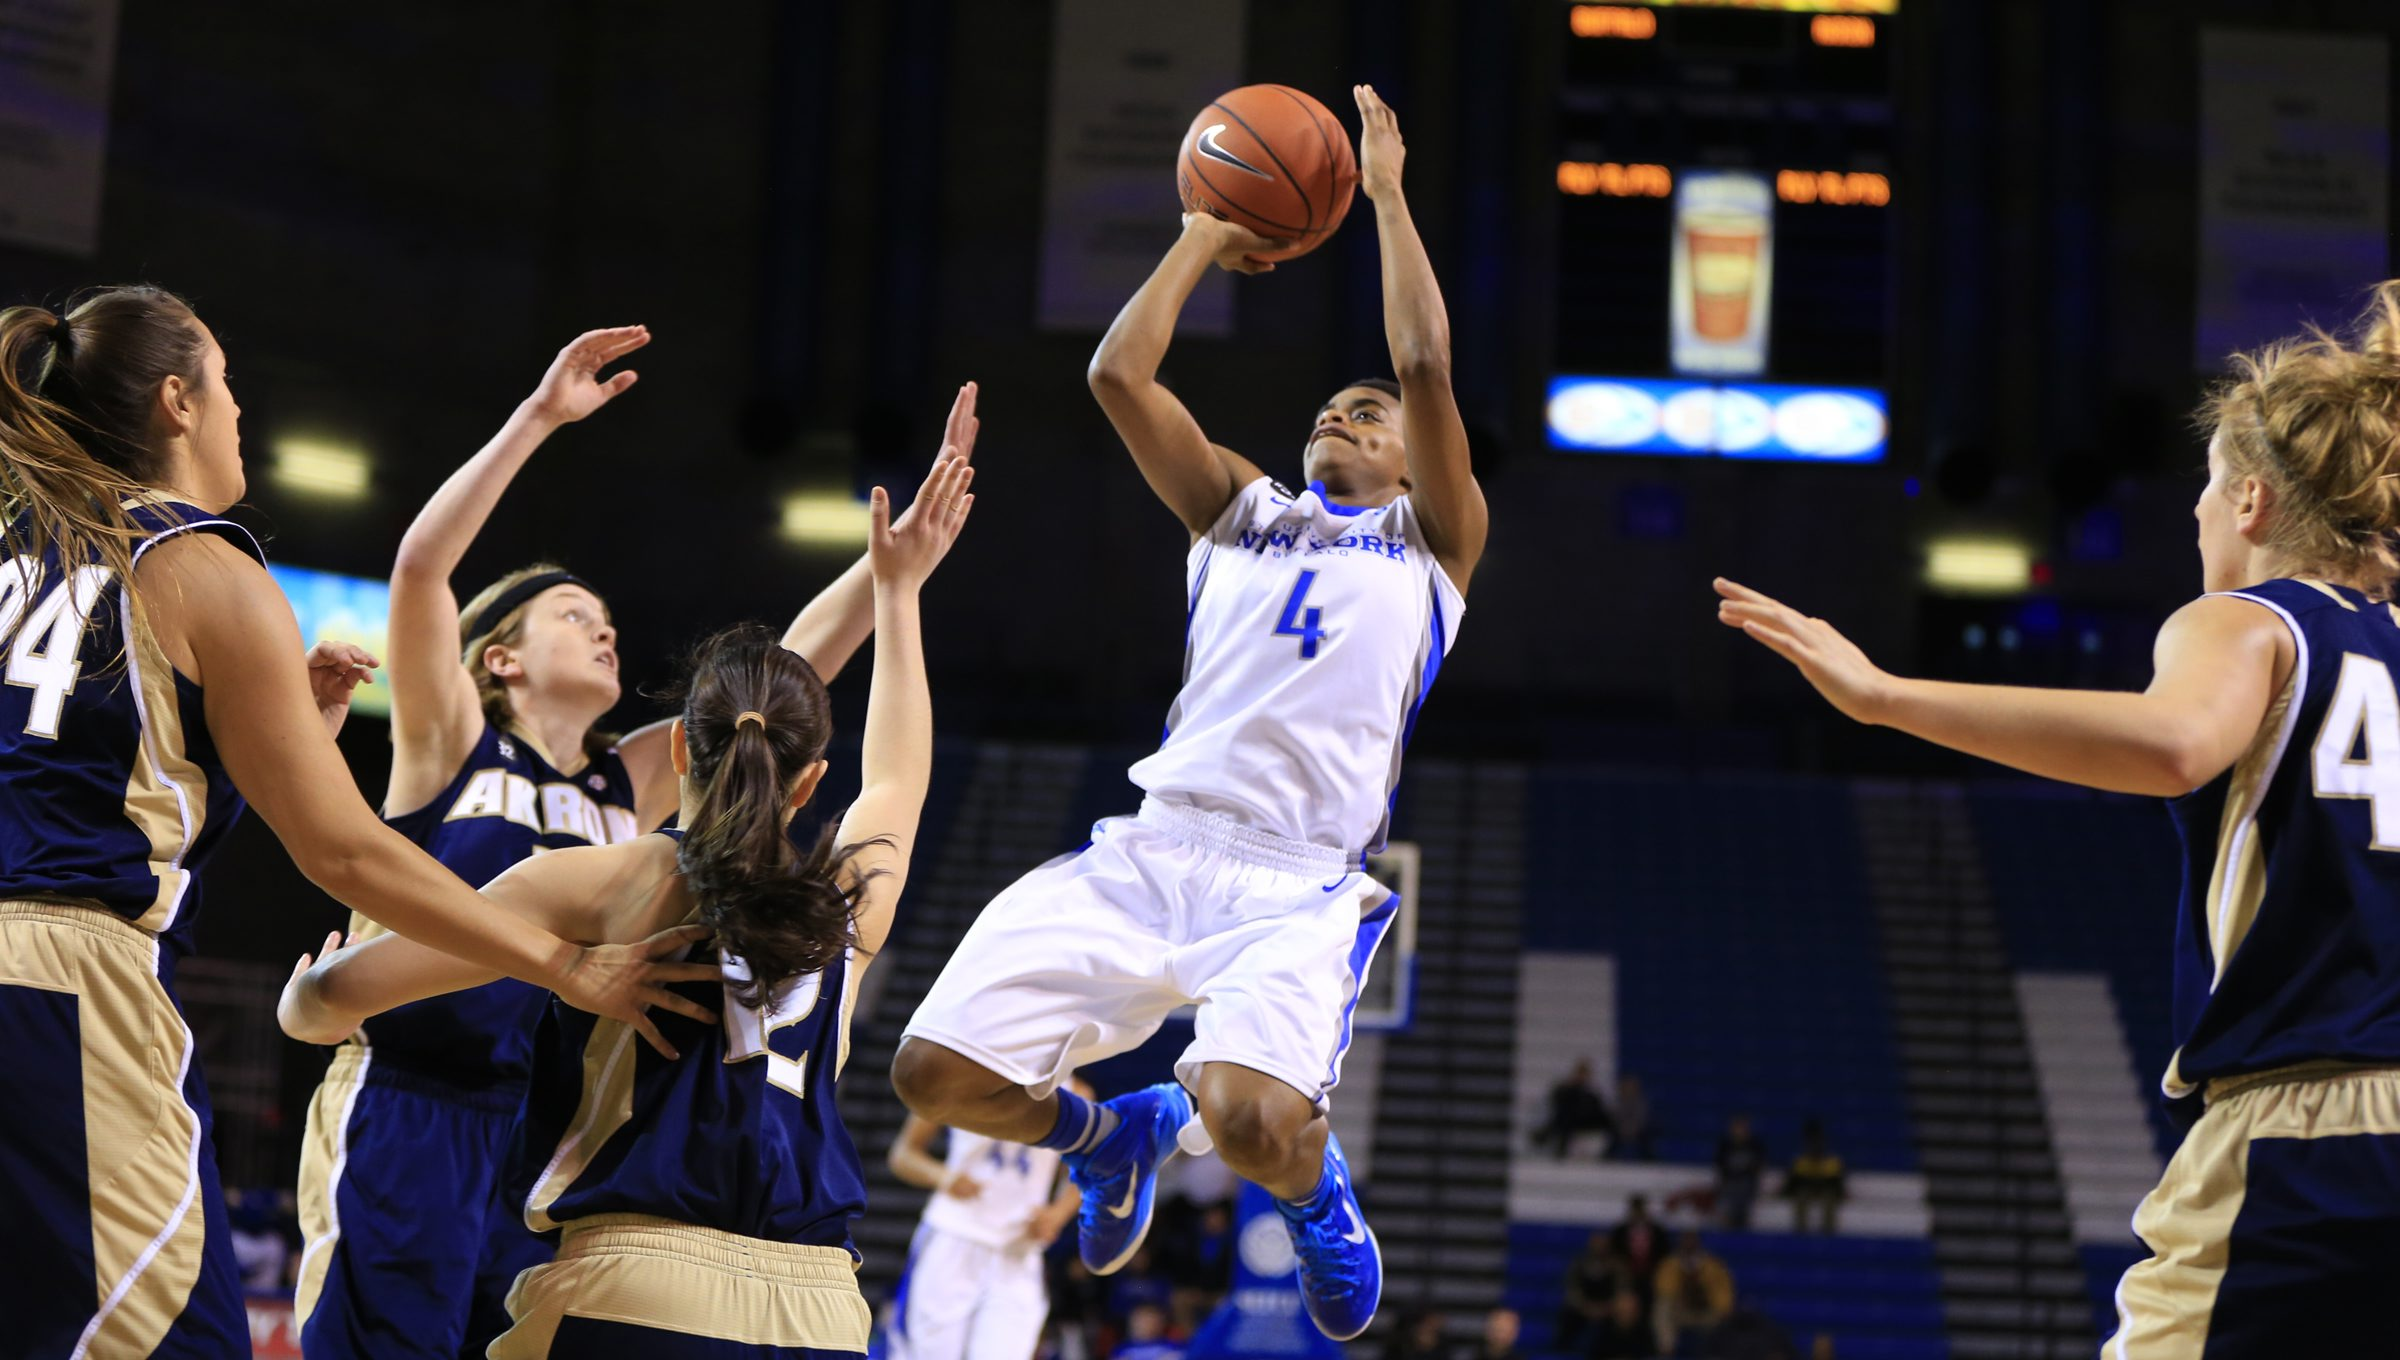 The University at Buffalo's JoAnna Smith (4) shoots between Akron players during first half action at Alumni Arena on Saturday, Feb. 28, 2015.(Harry Scull Jr./Buffalo News)